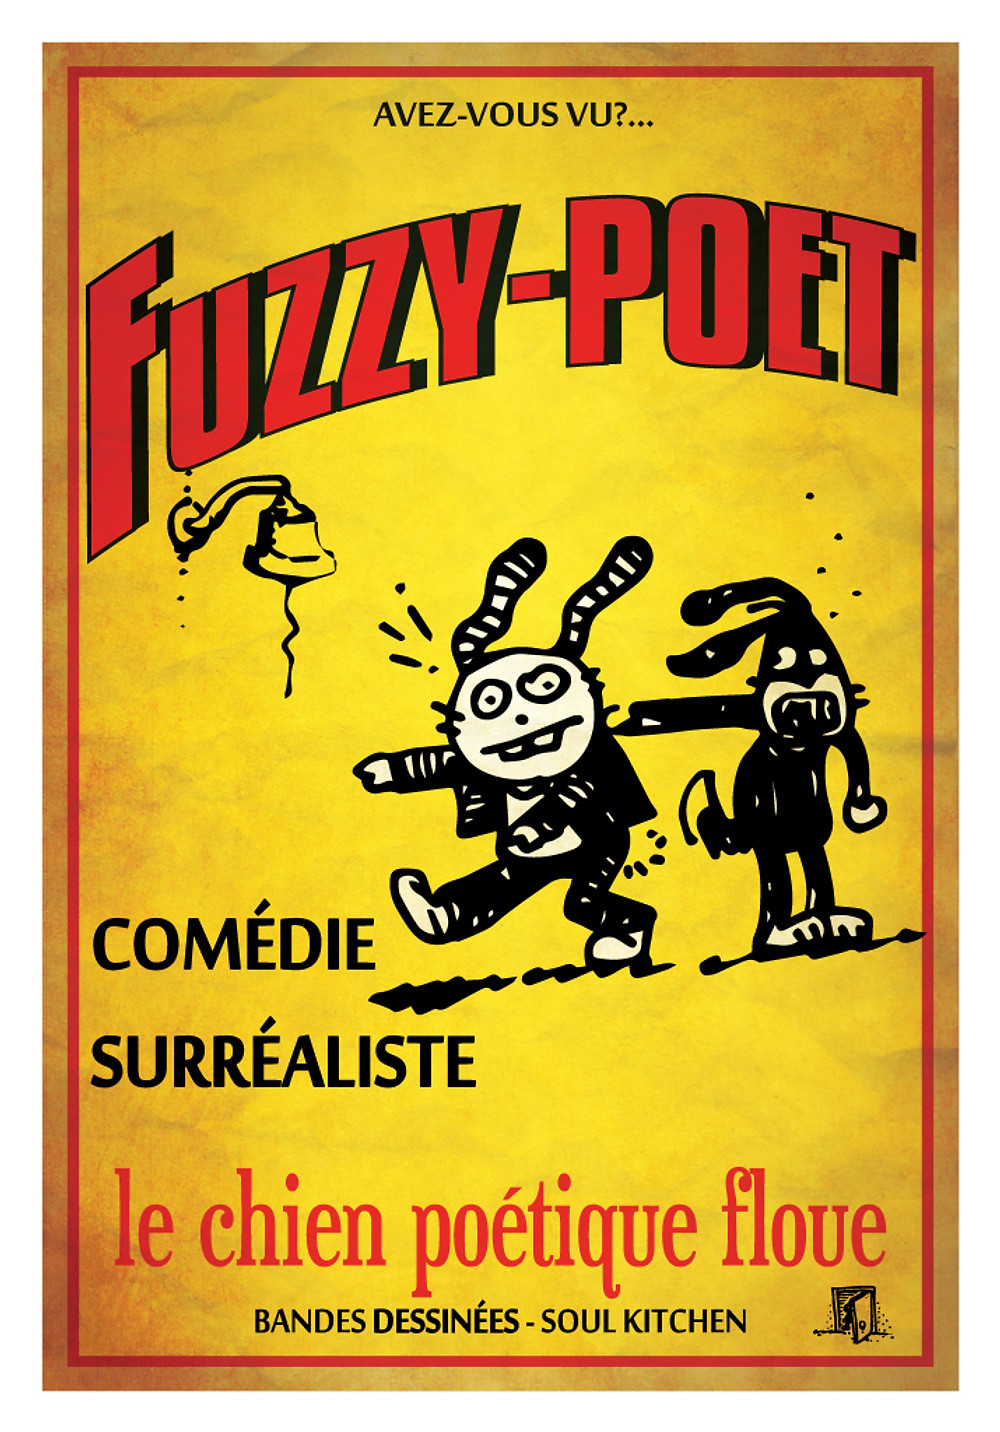 Fuzzy Poet French Poster (C) 2015 Drew Gold. All rights reserved.